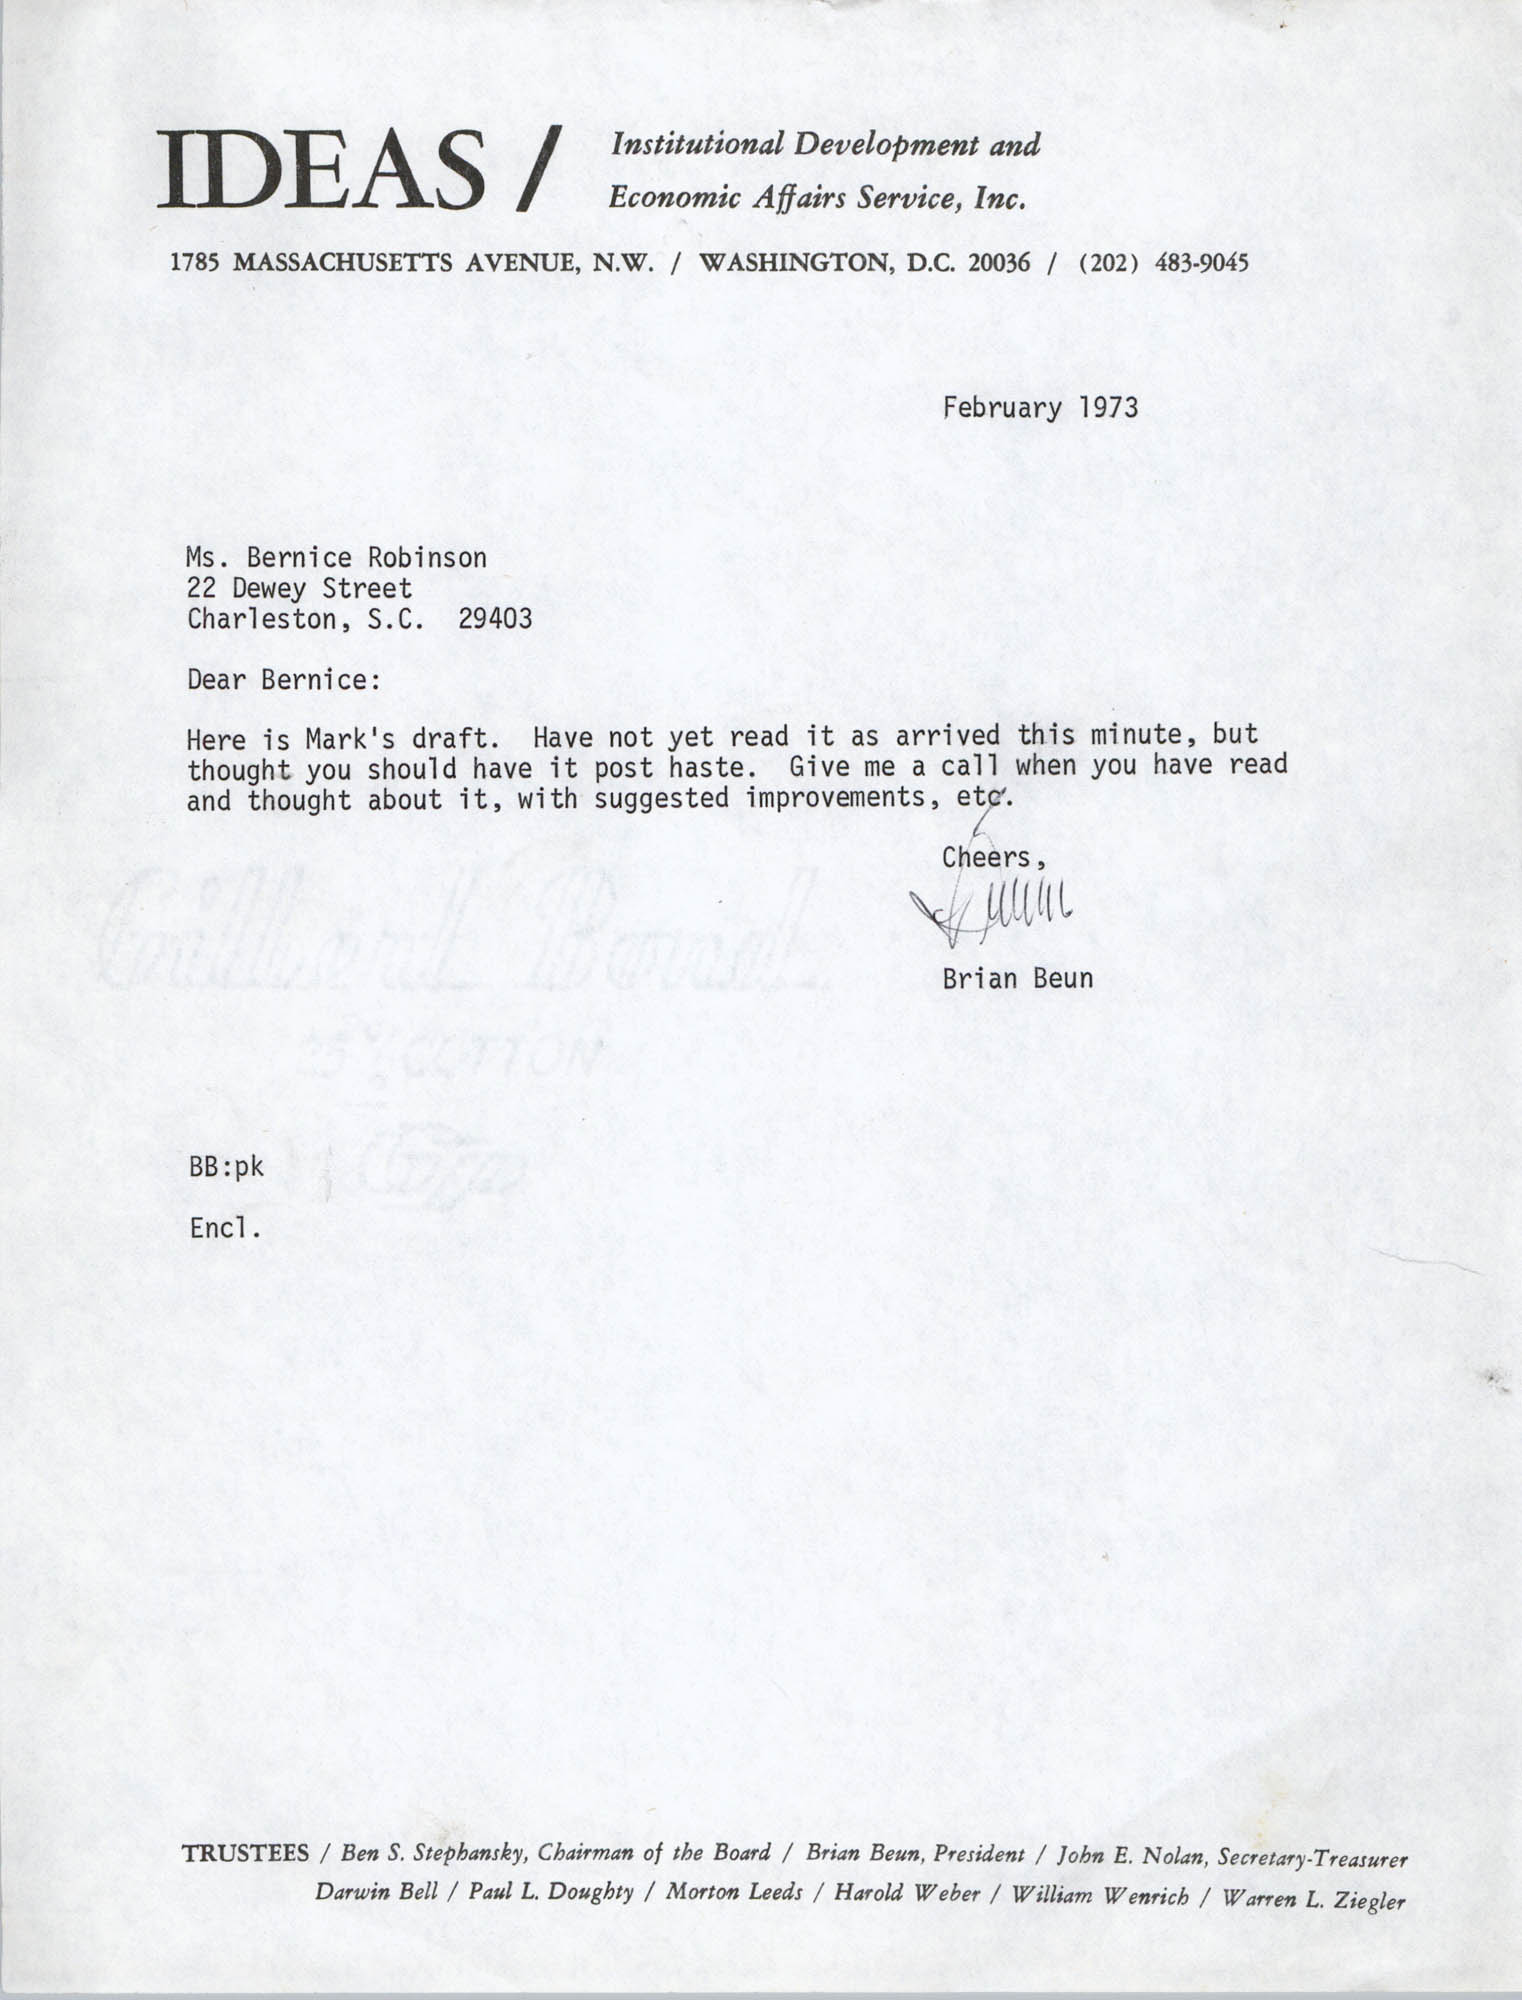 Letter from Brian Beun to Bernice Robinson, February 1973